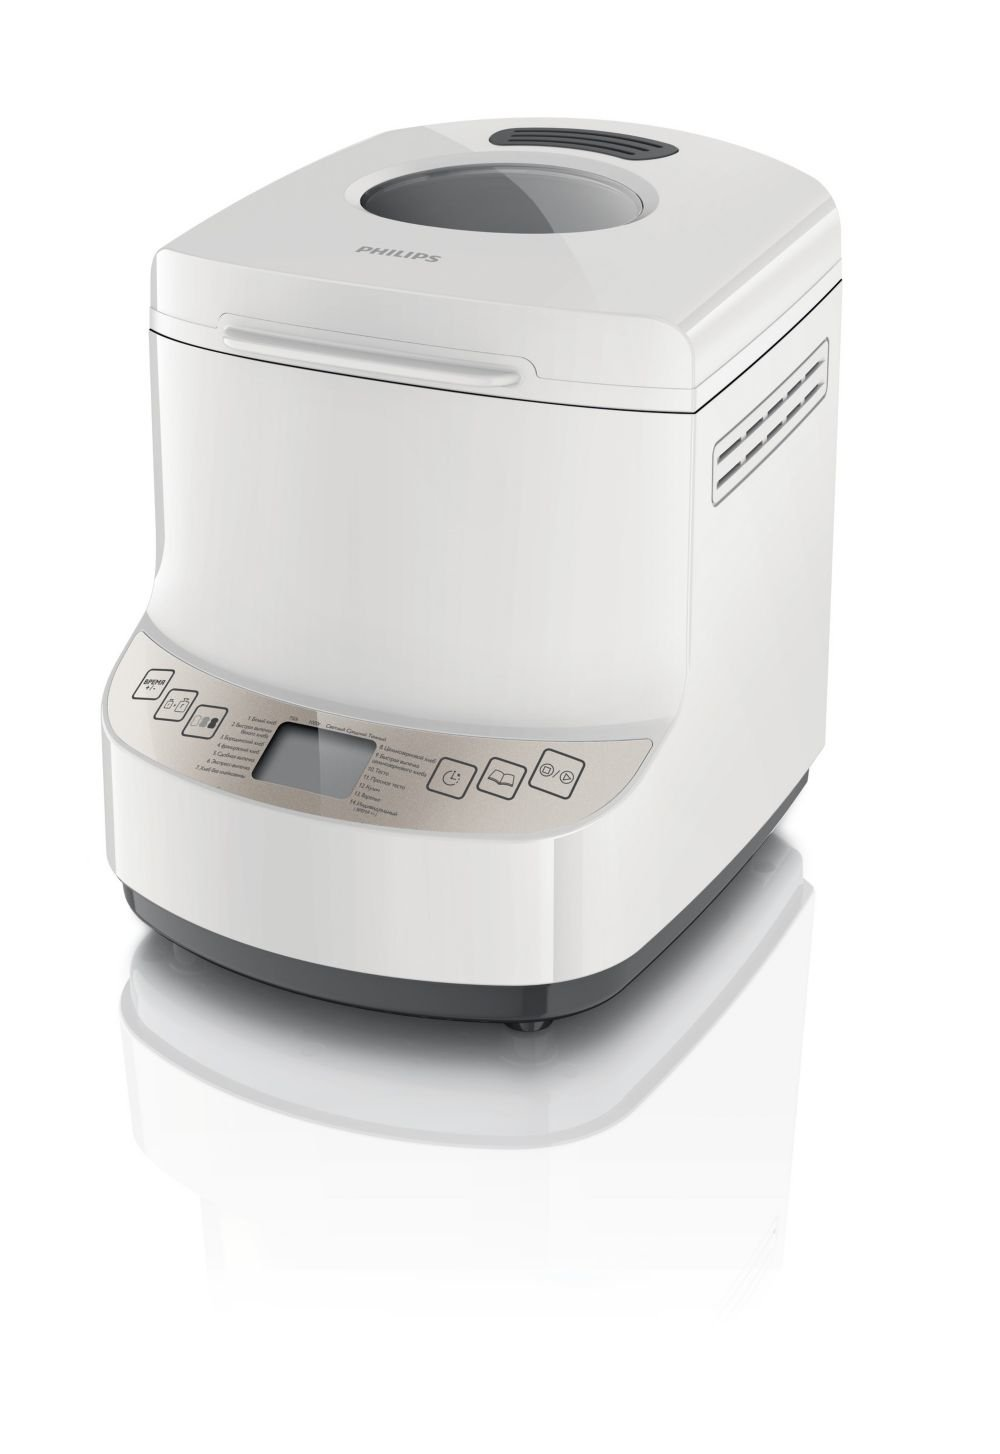 Philips Viva Collection HD9045/30 Blanco - Panificadora (Blanco, 1 kg, 750 g, 13 h, Tocar, LCD): Amazon.es: Hogar